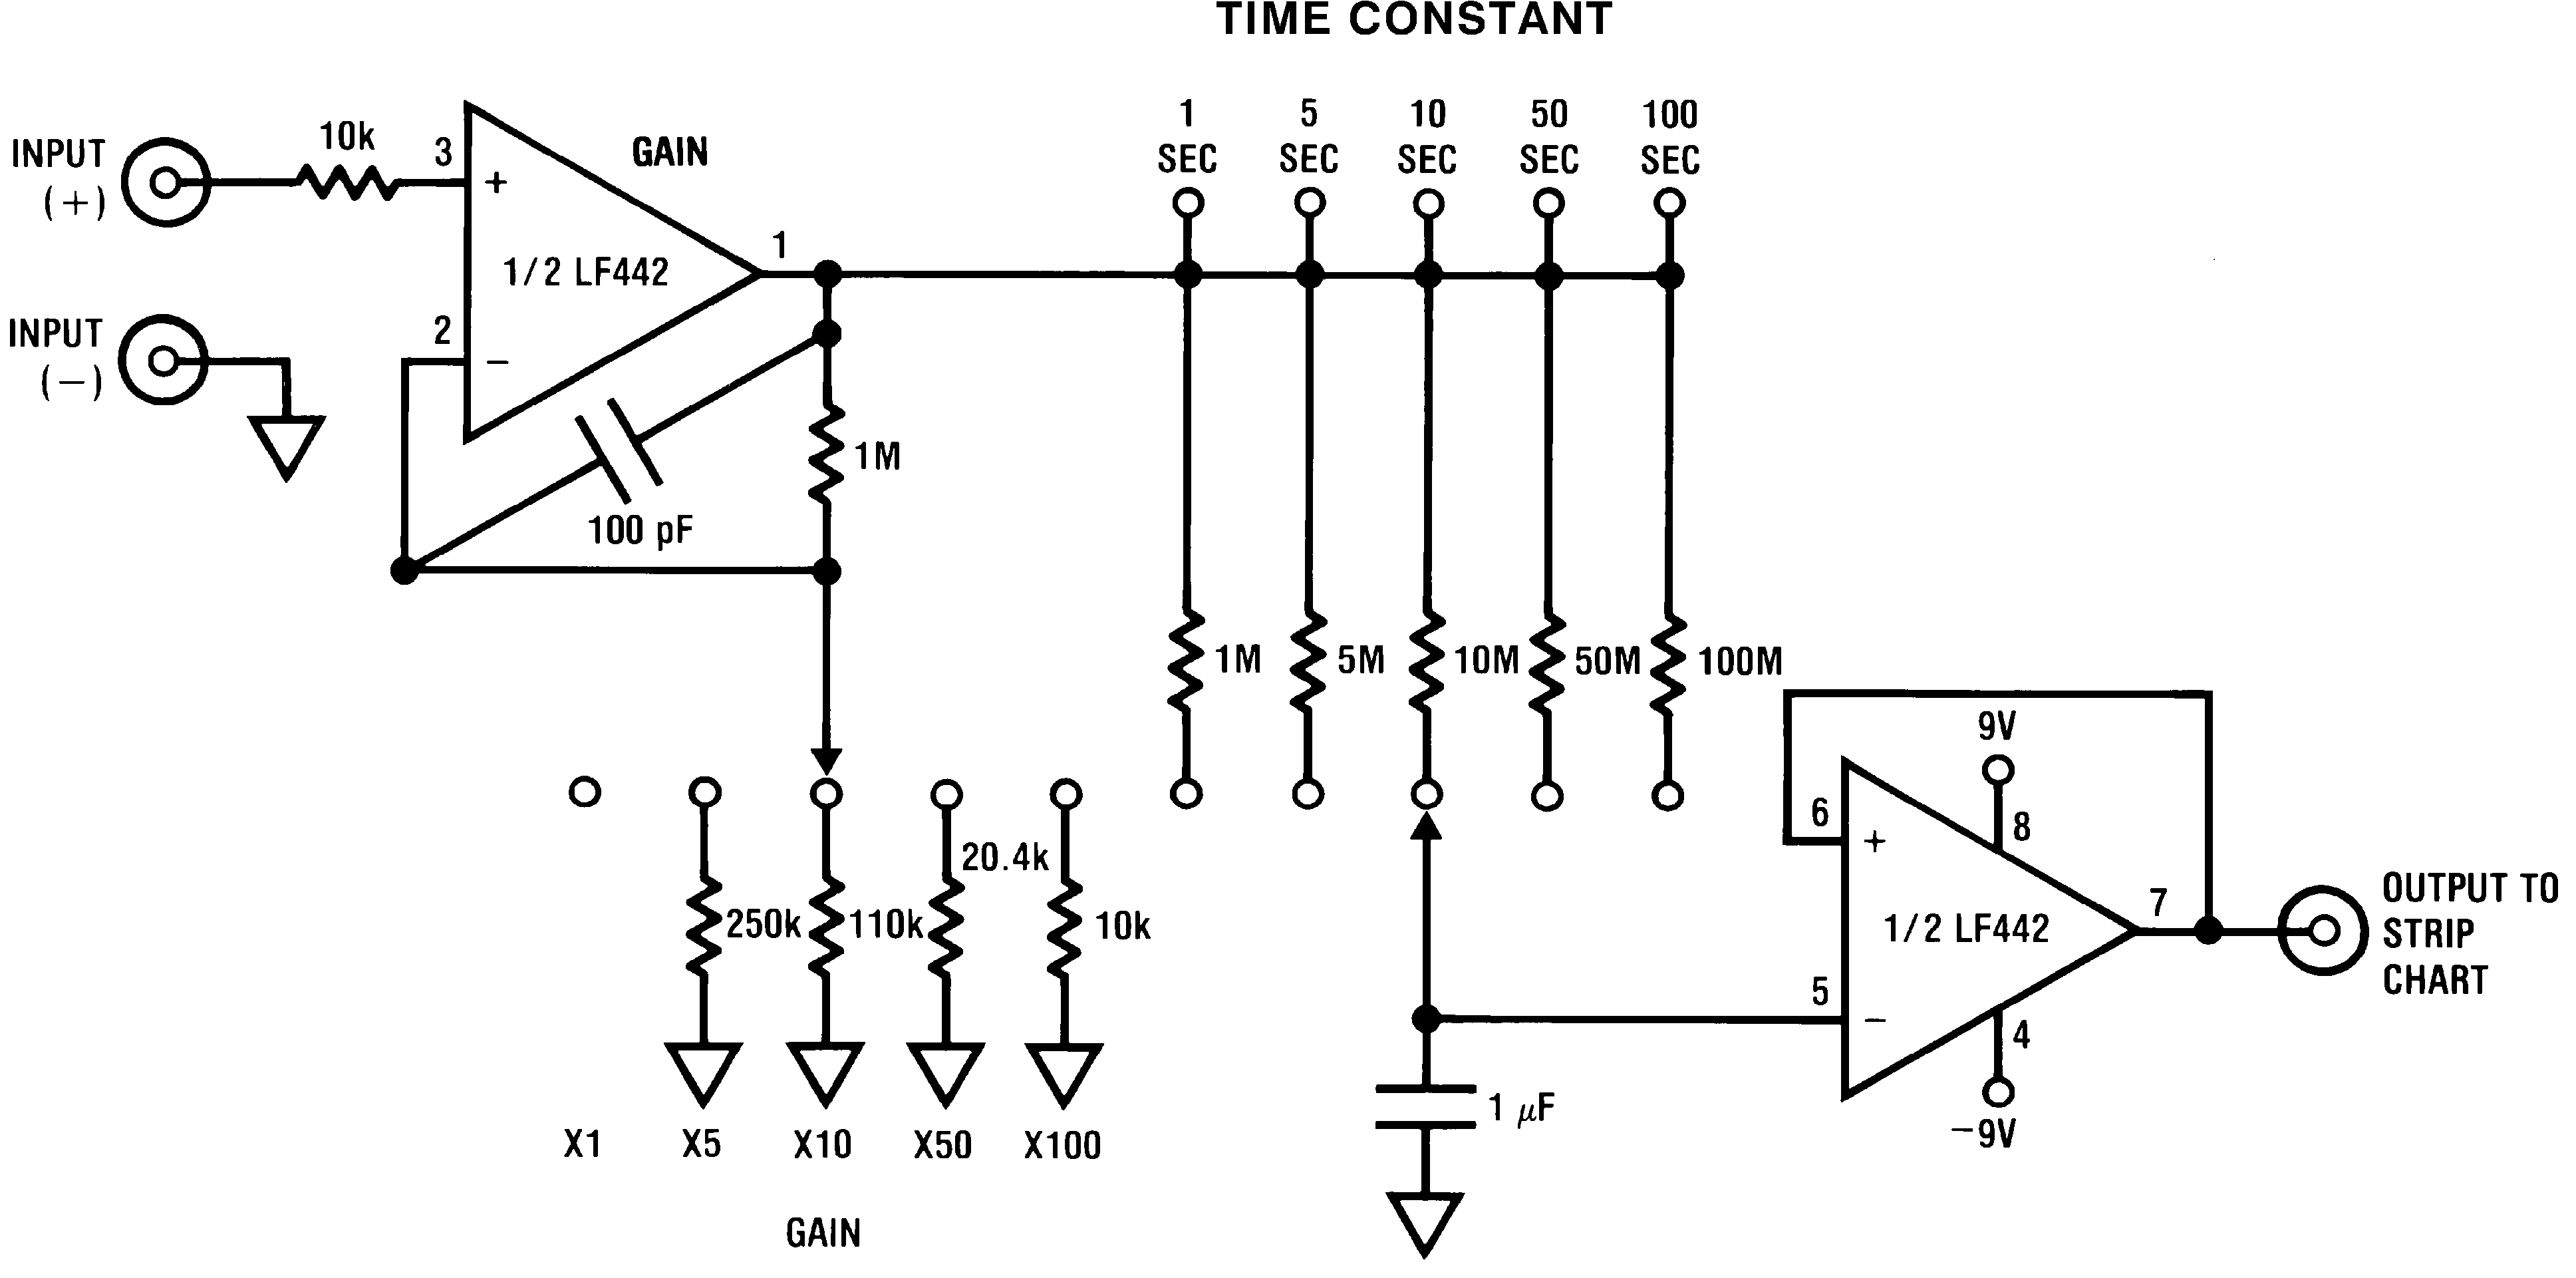 Jfet Pin Diagram Opamp Offset Null Circuit Tradeoficcom Microporium